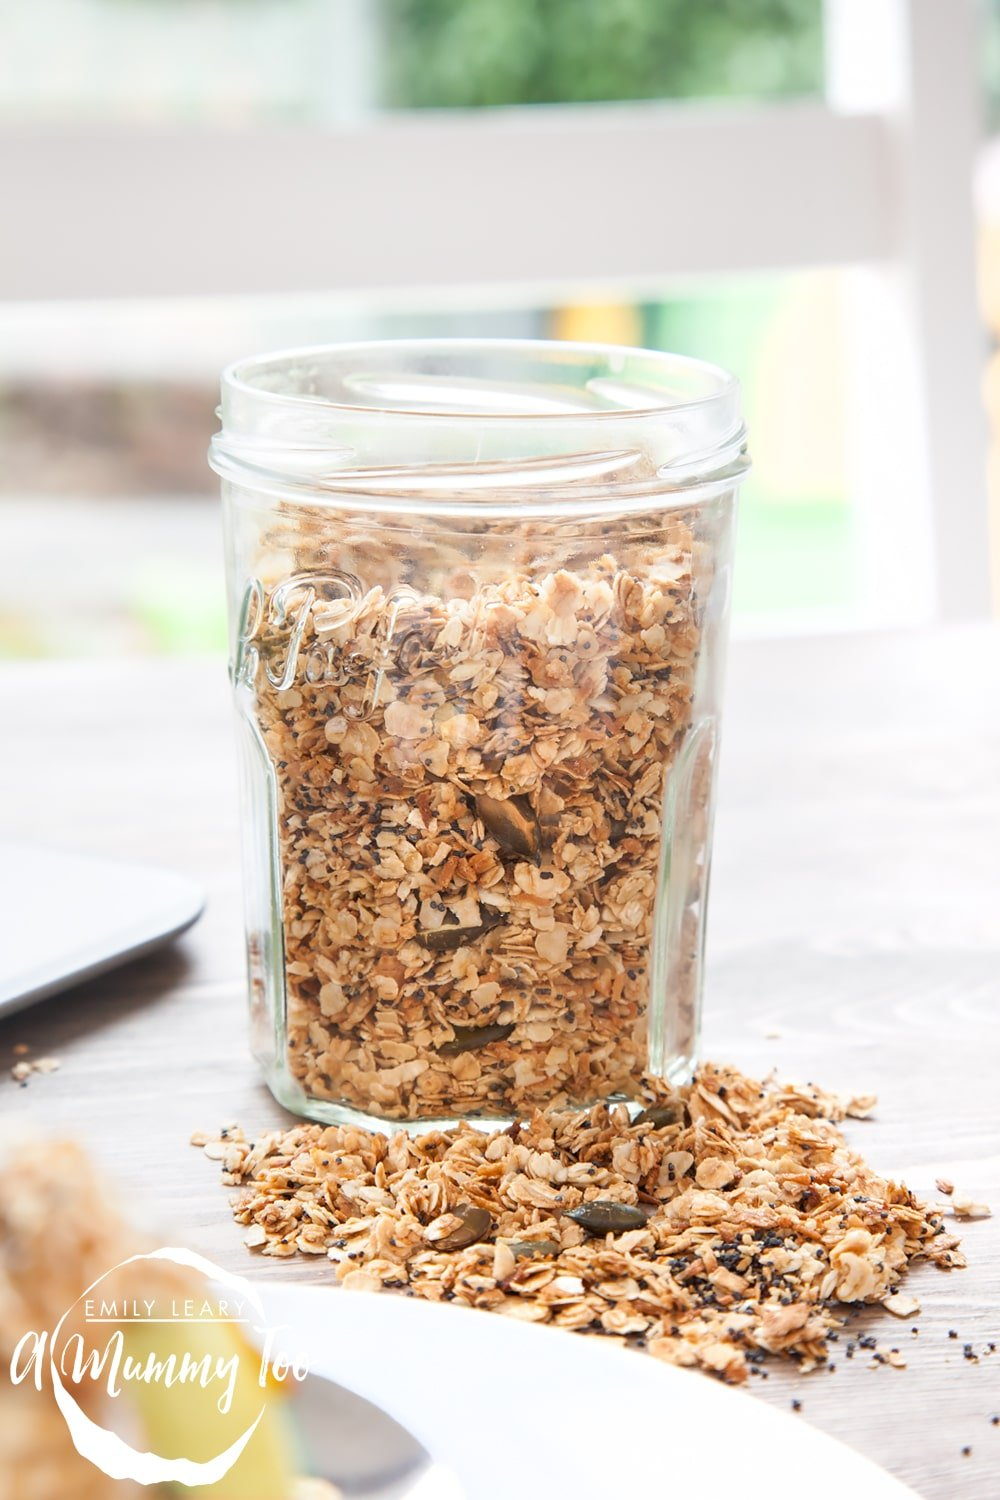 Granola stored in a jar, ready to use in a future recipe